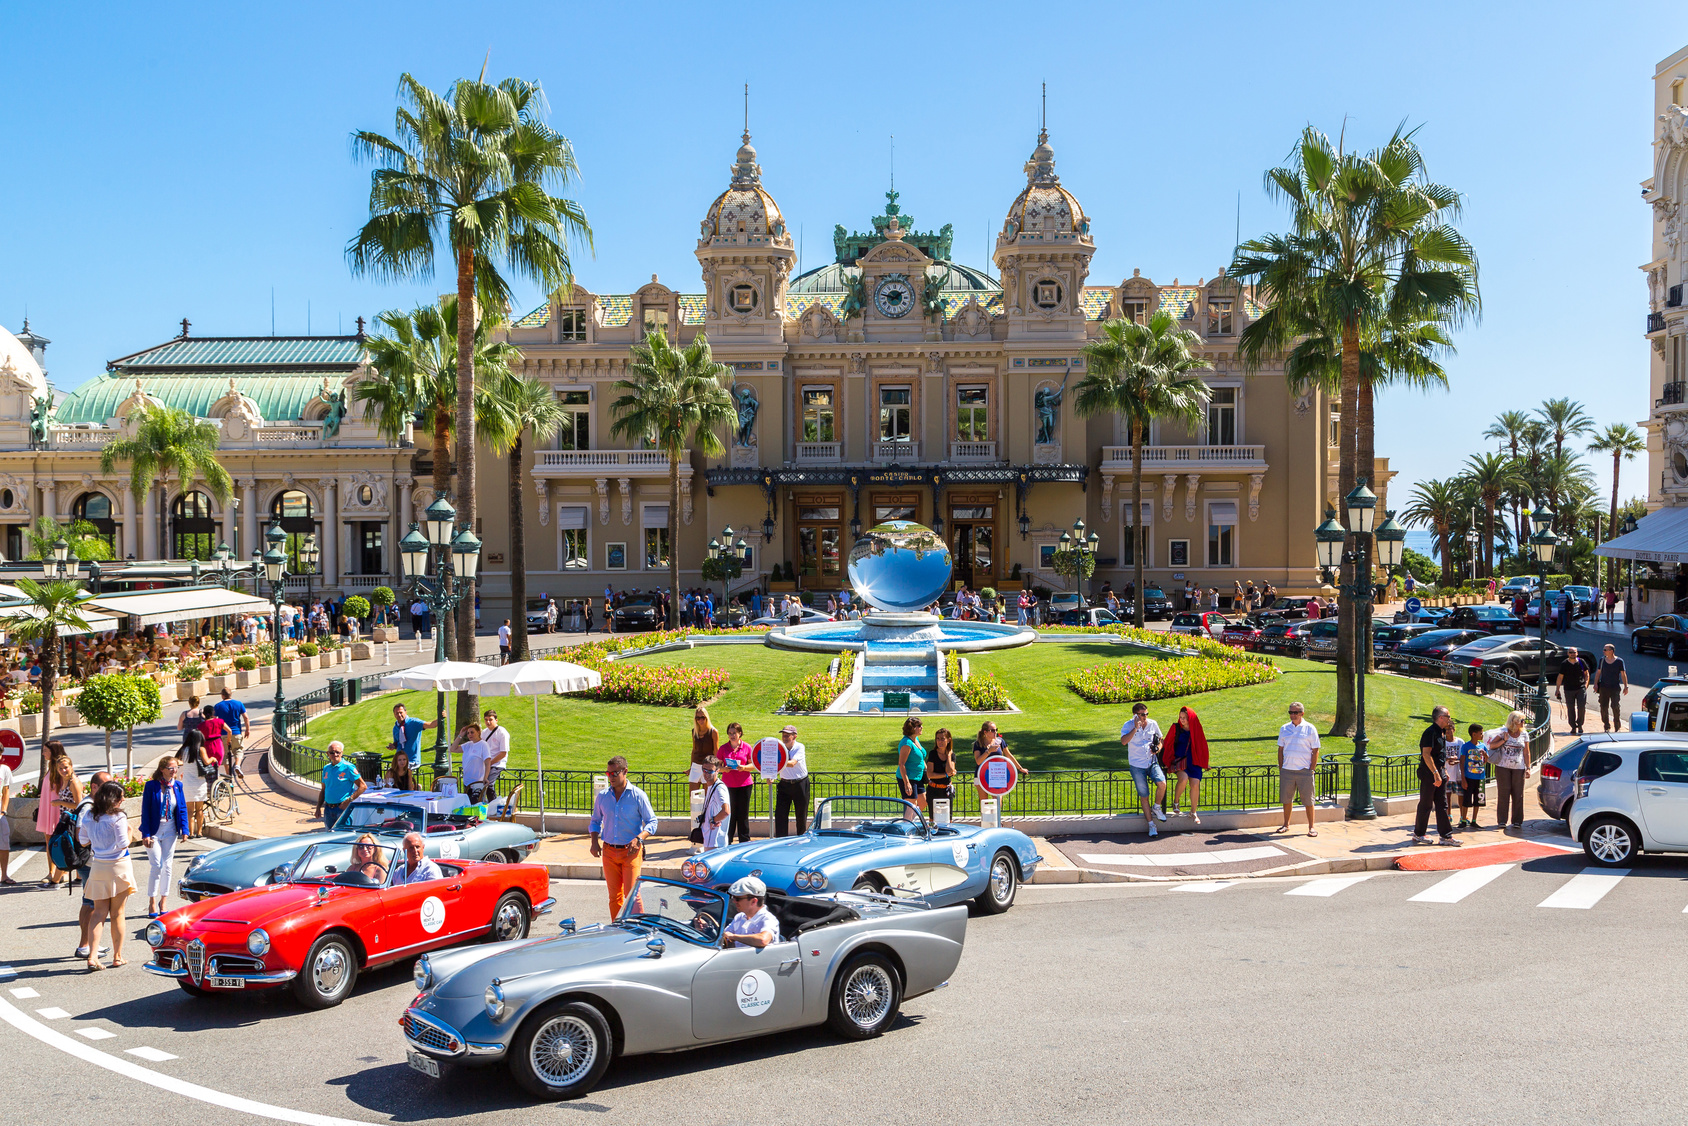 MONTE CARLO - JULY 17: Grand casino in Monte Carlo in Monaco in a summer day on July 17, 2014